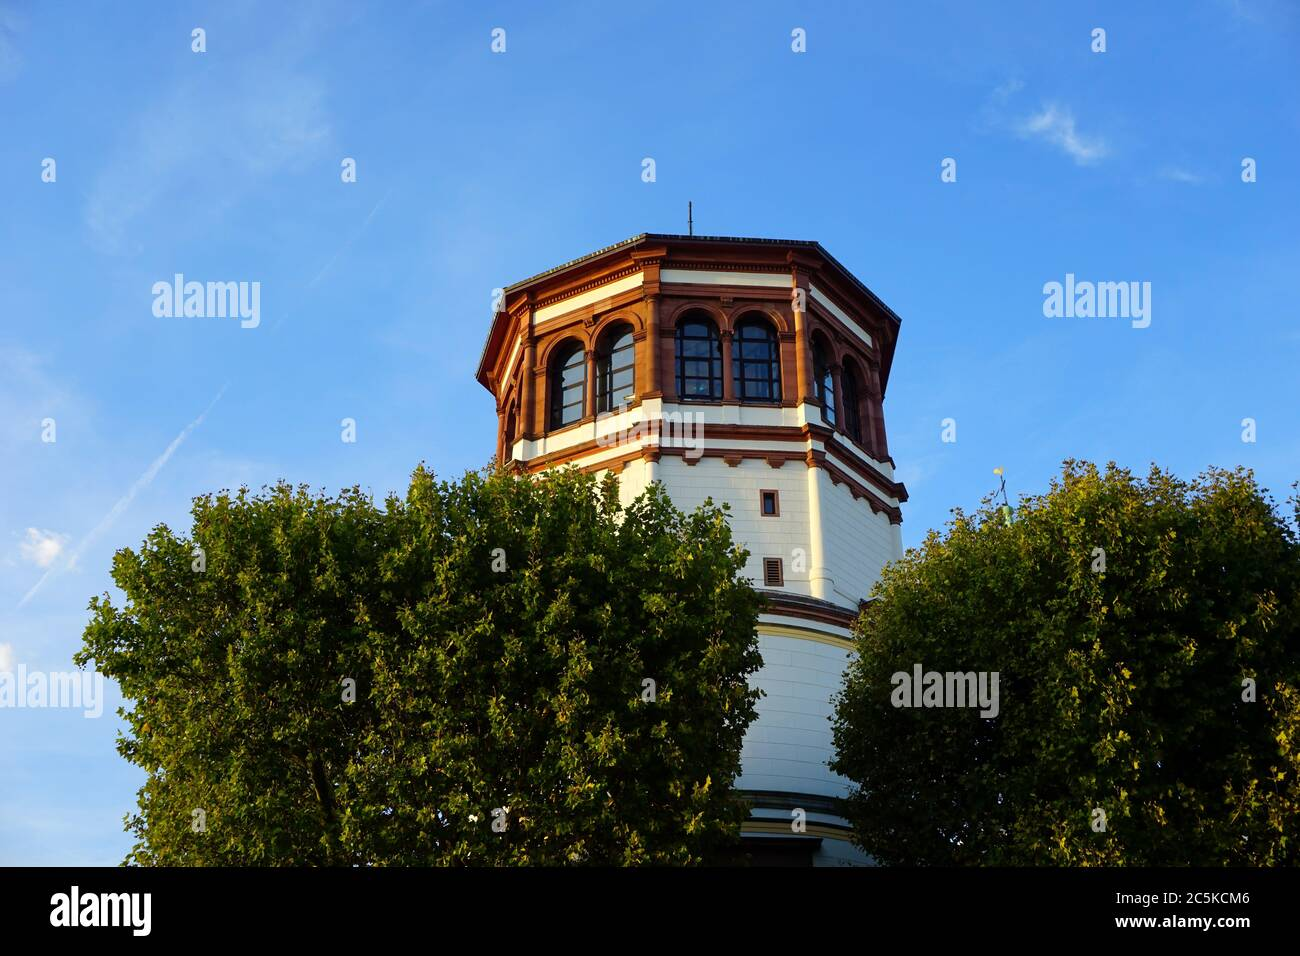 """The ancient """"Schlossturm"""" at Burgplatz in Old Town, framed by old trees. It once belonged to a castle that was destroyed in 1872. Stock Photo"""